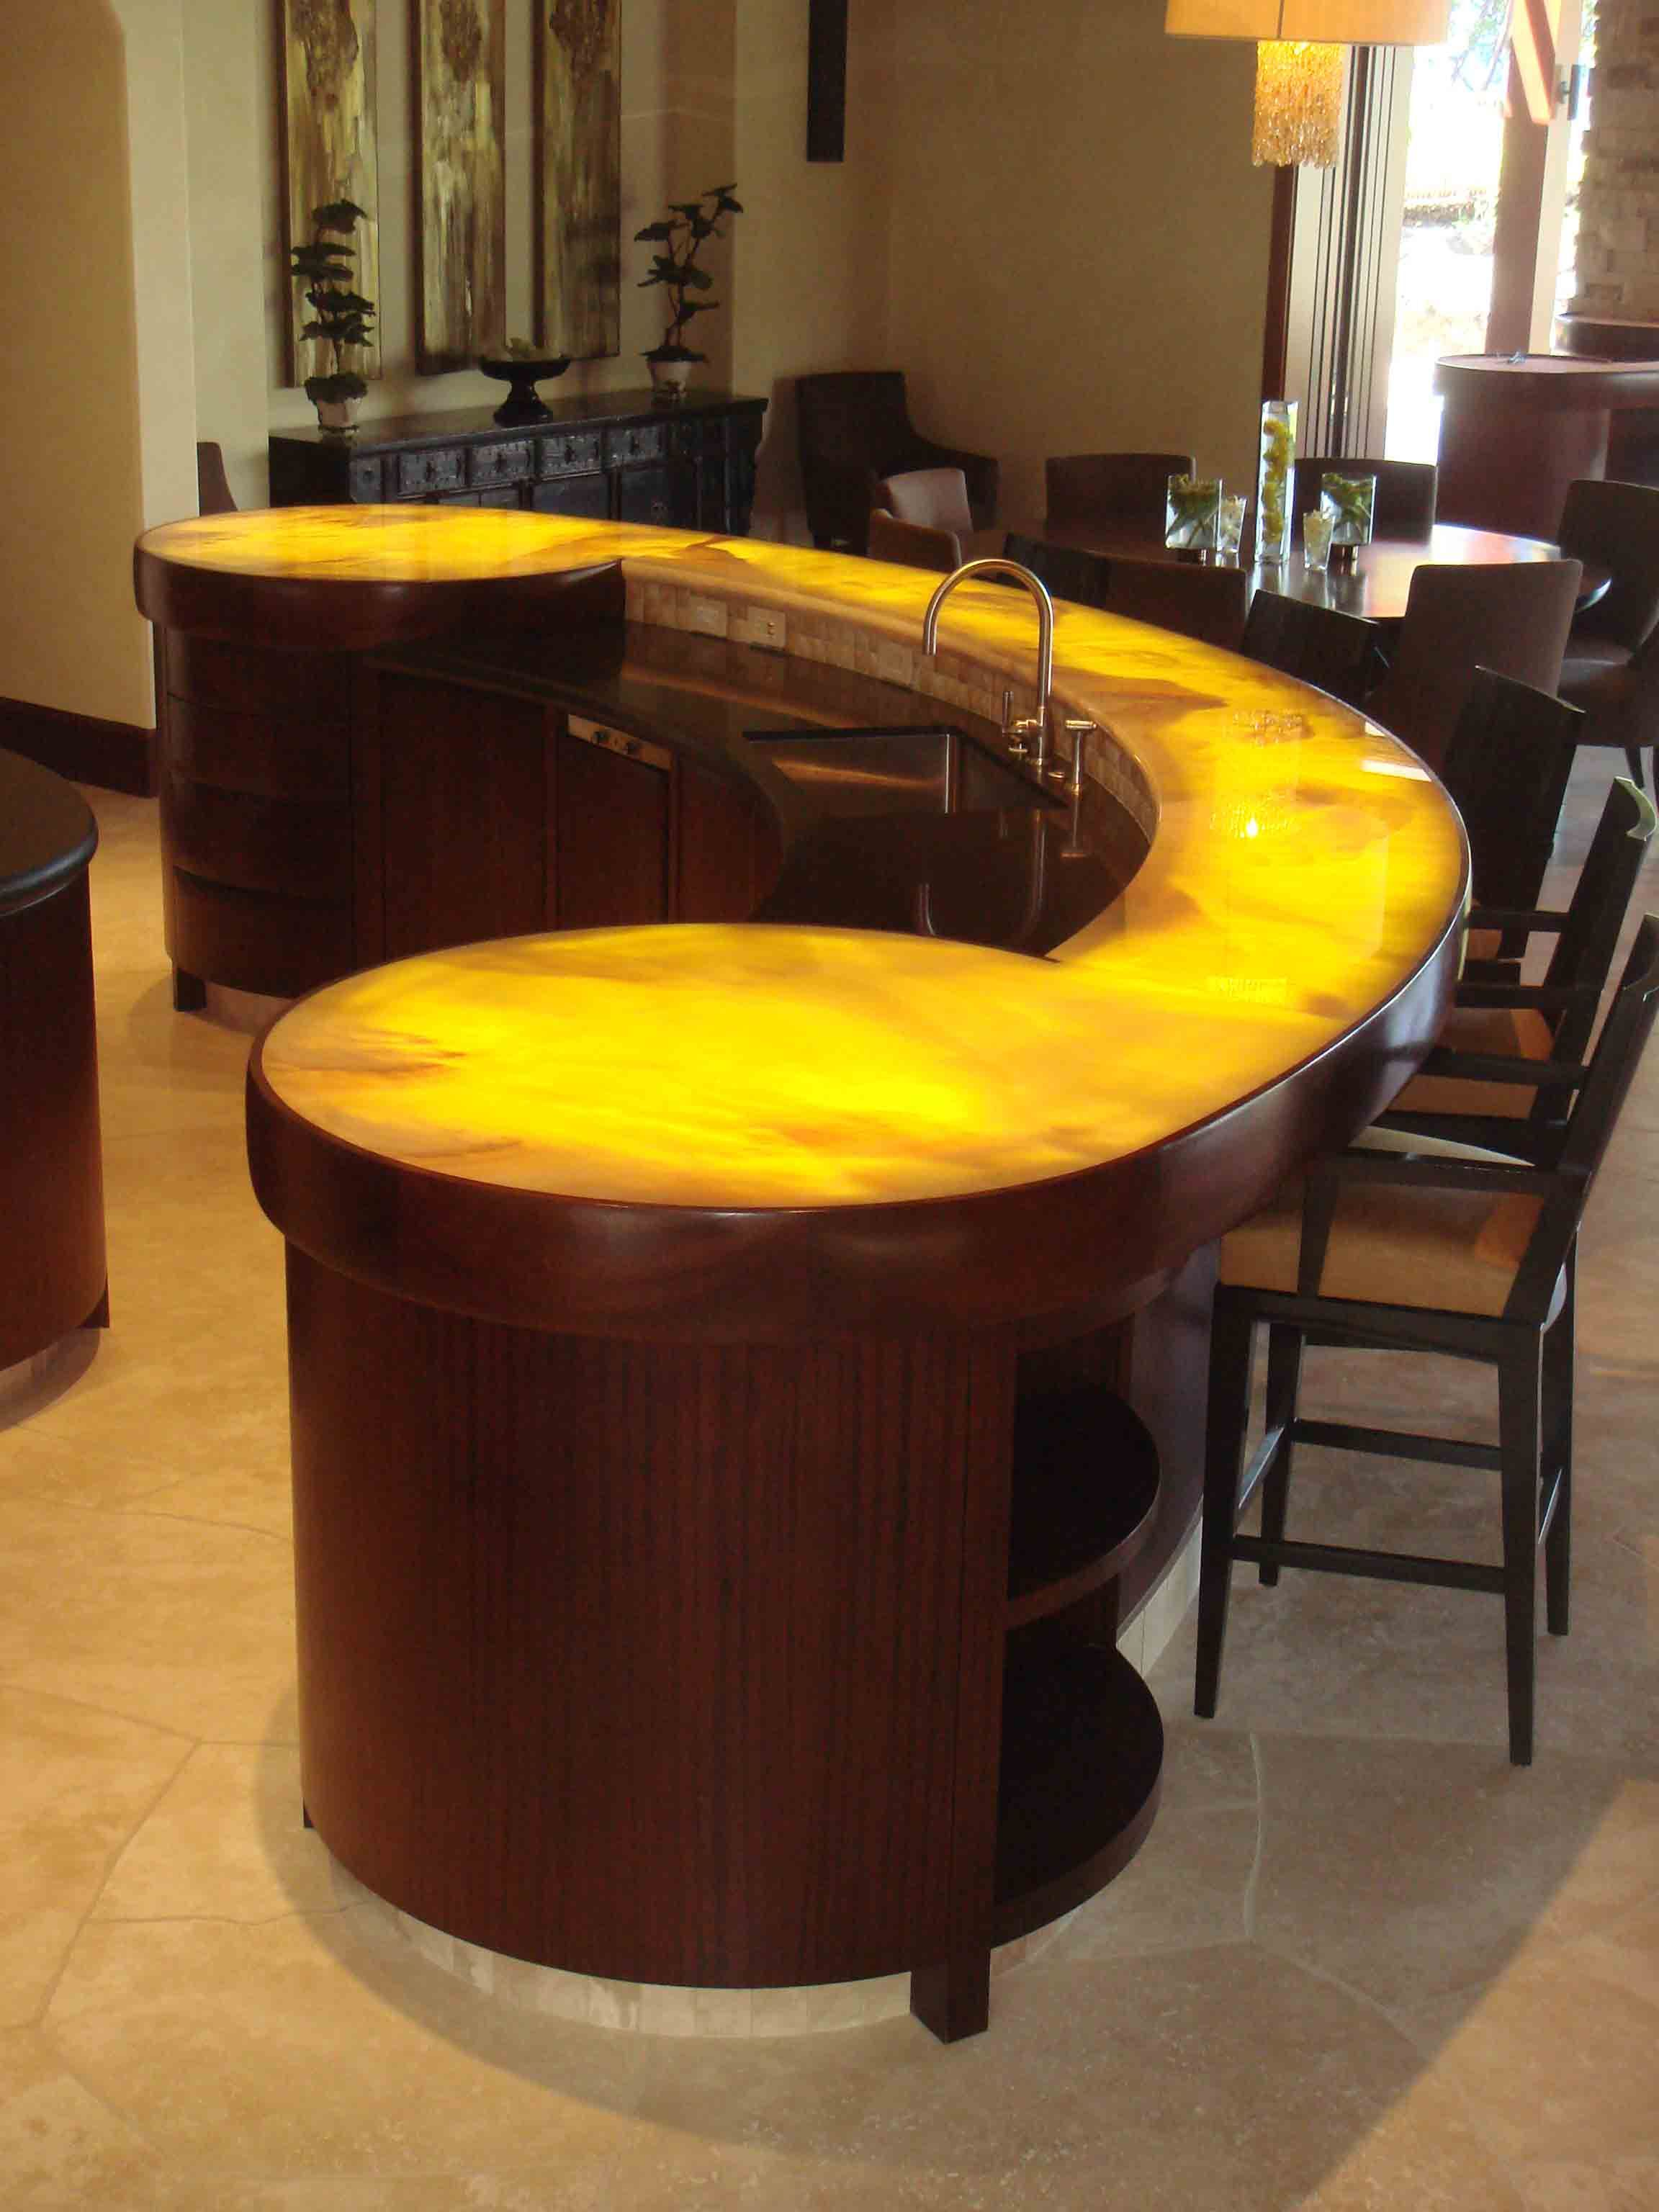 Fetching Modern Bar Counter Designs For Home Design With Dark Brown Wood Small Table Also Splendid Curved And Eye Catching Yellow Countertop